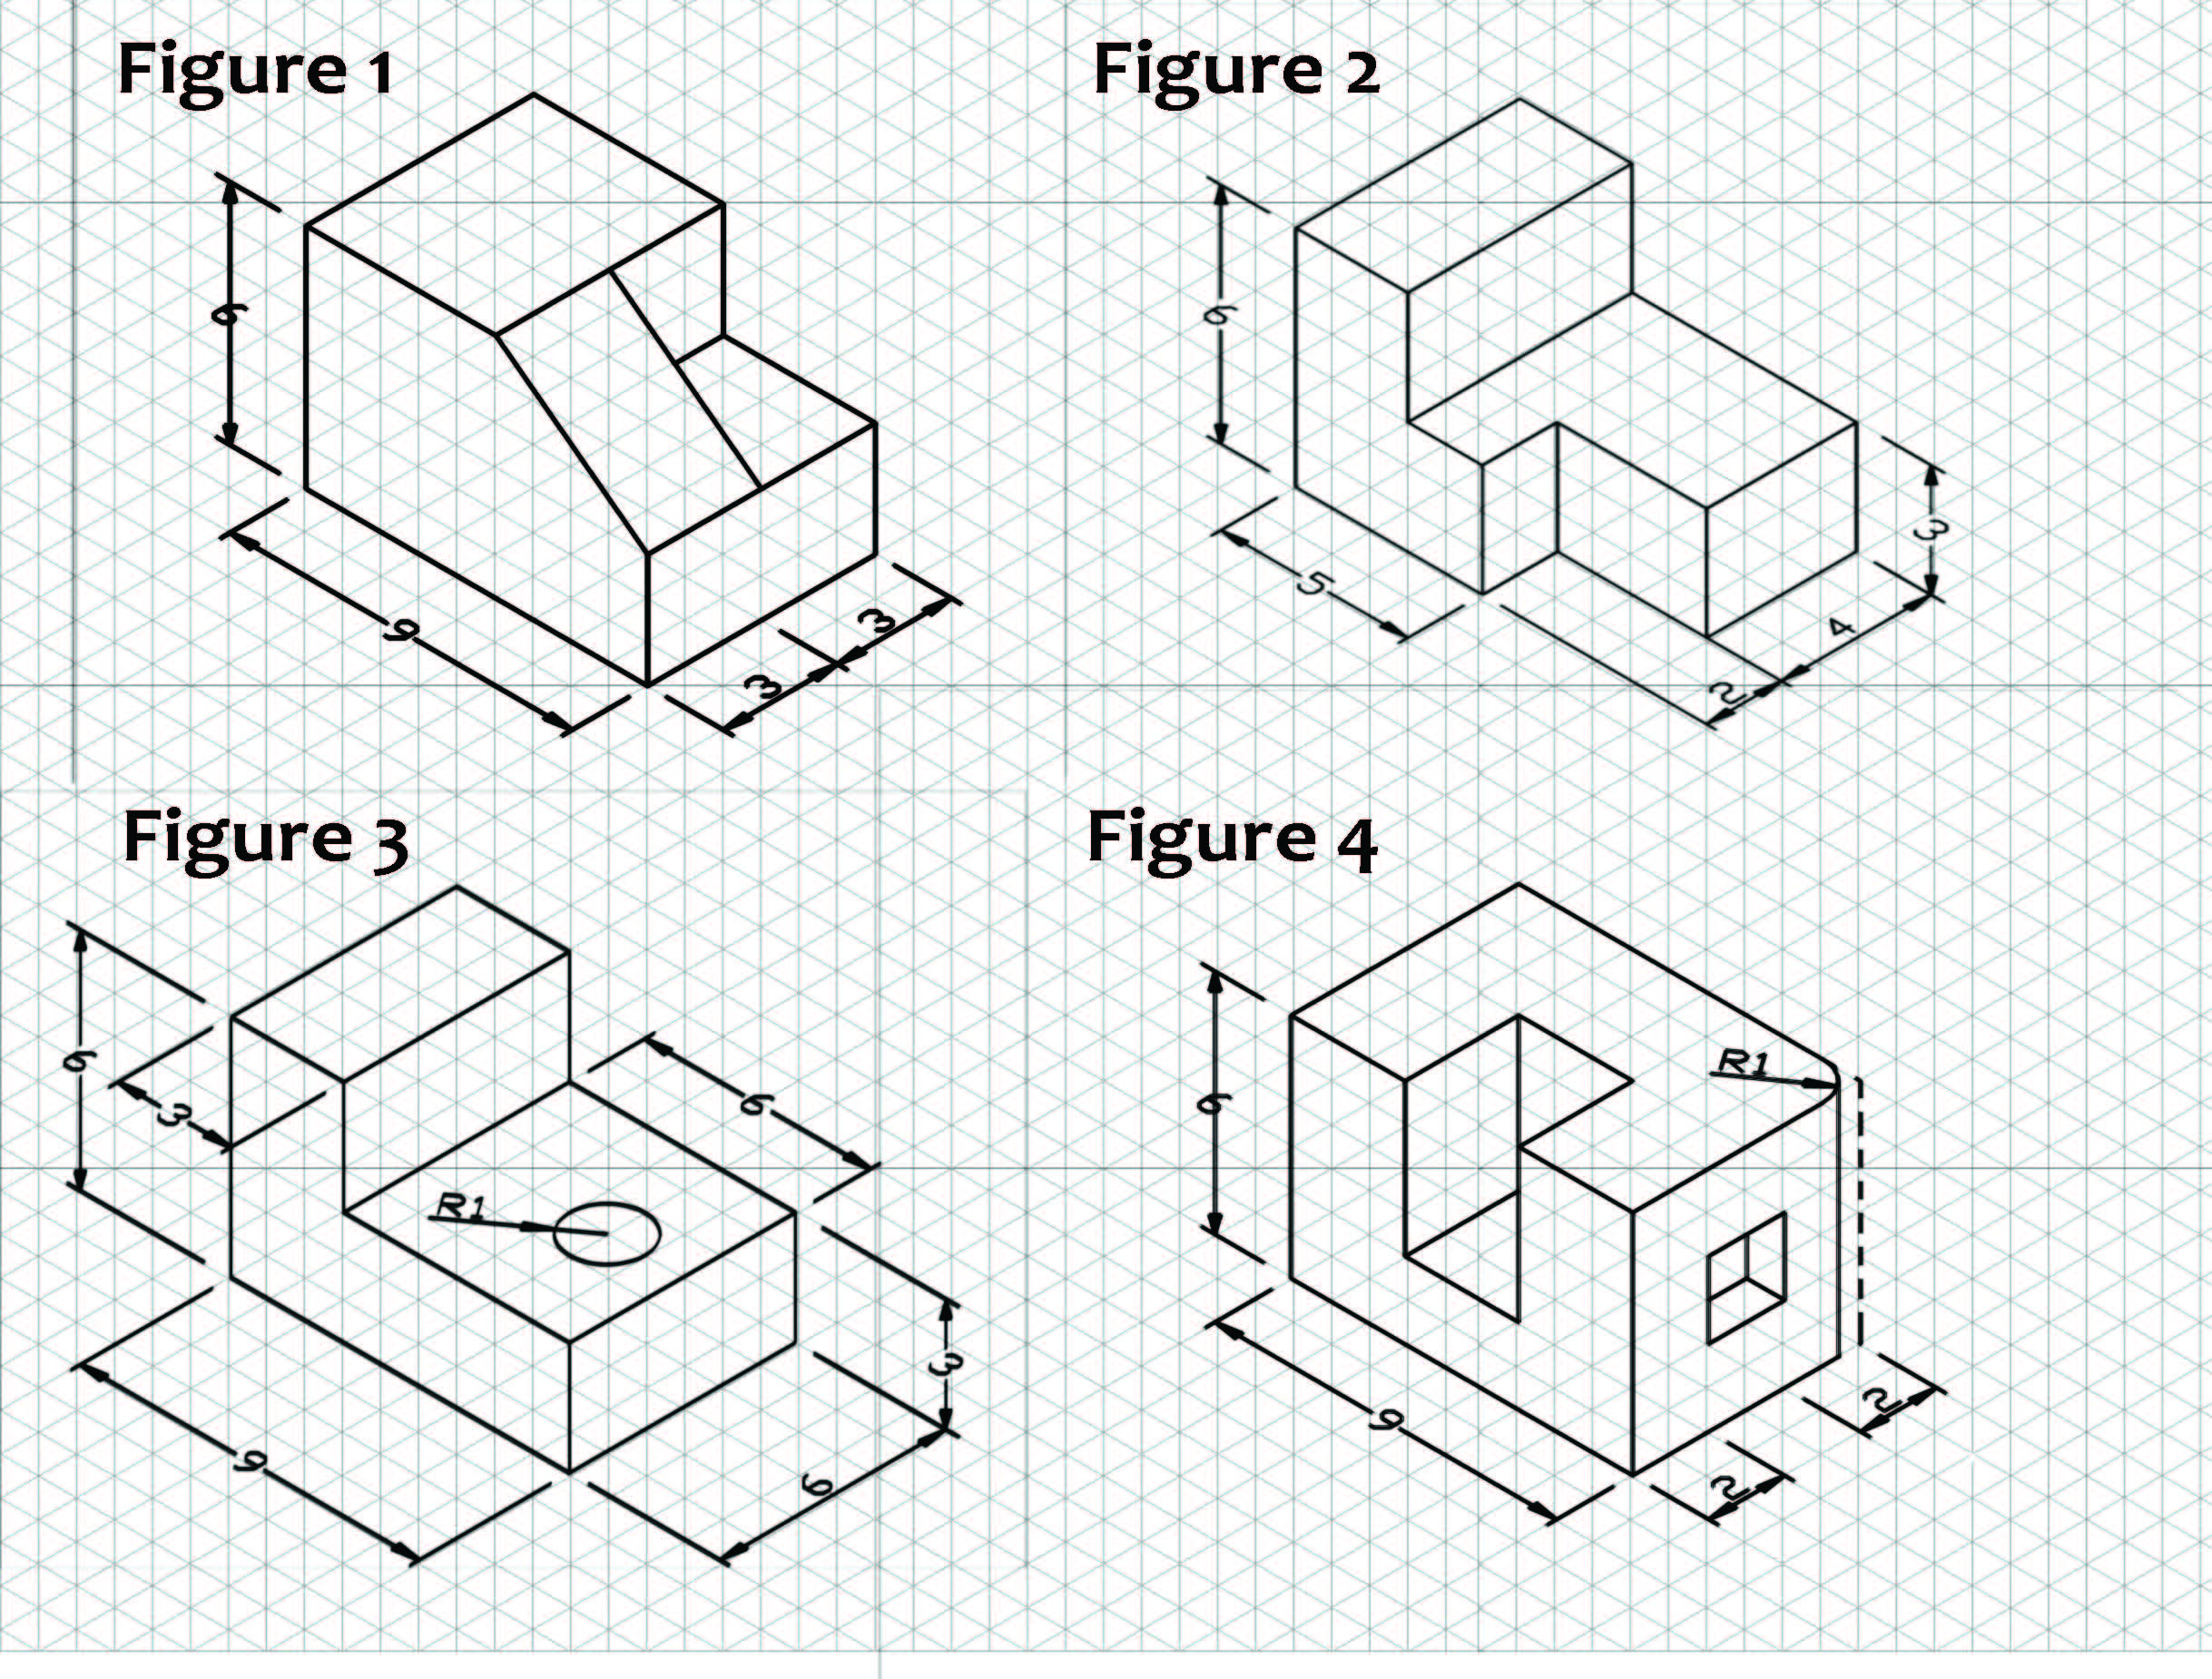 hight resolution of Oblique To Isometric Drawings Worksheets   Printable Worksheets and  Activities for Teachers